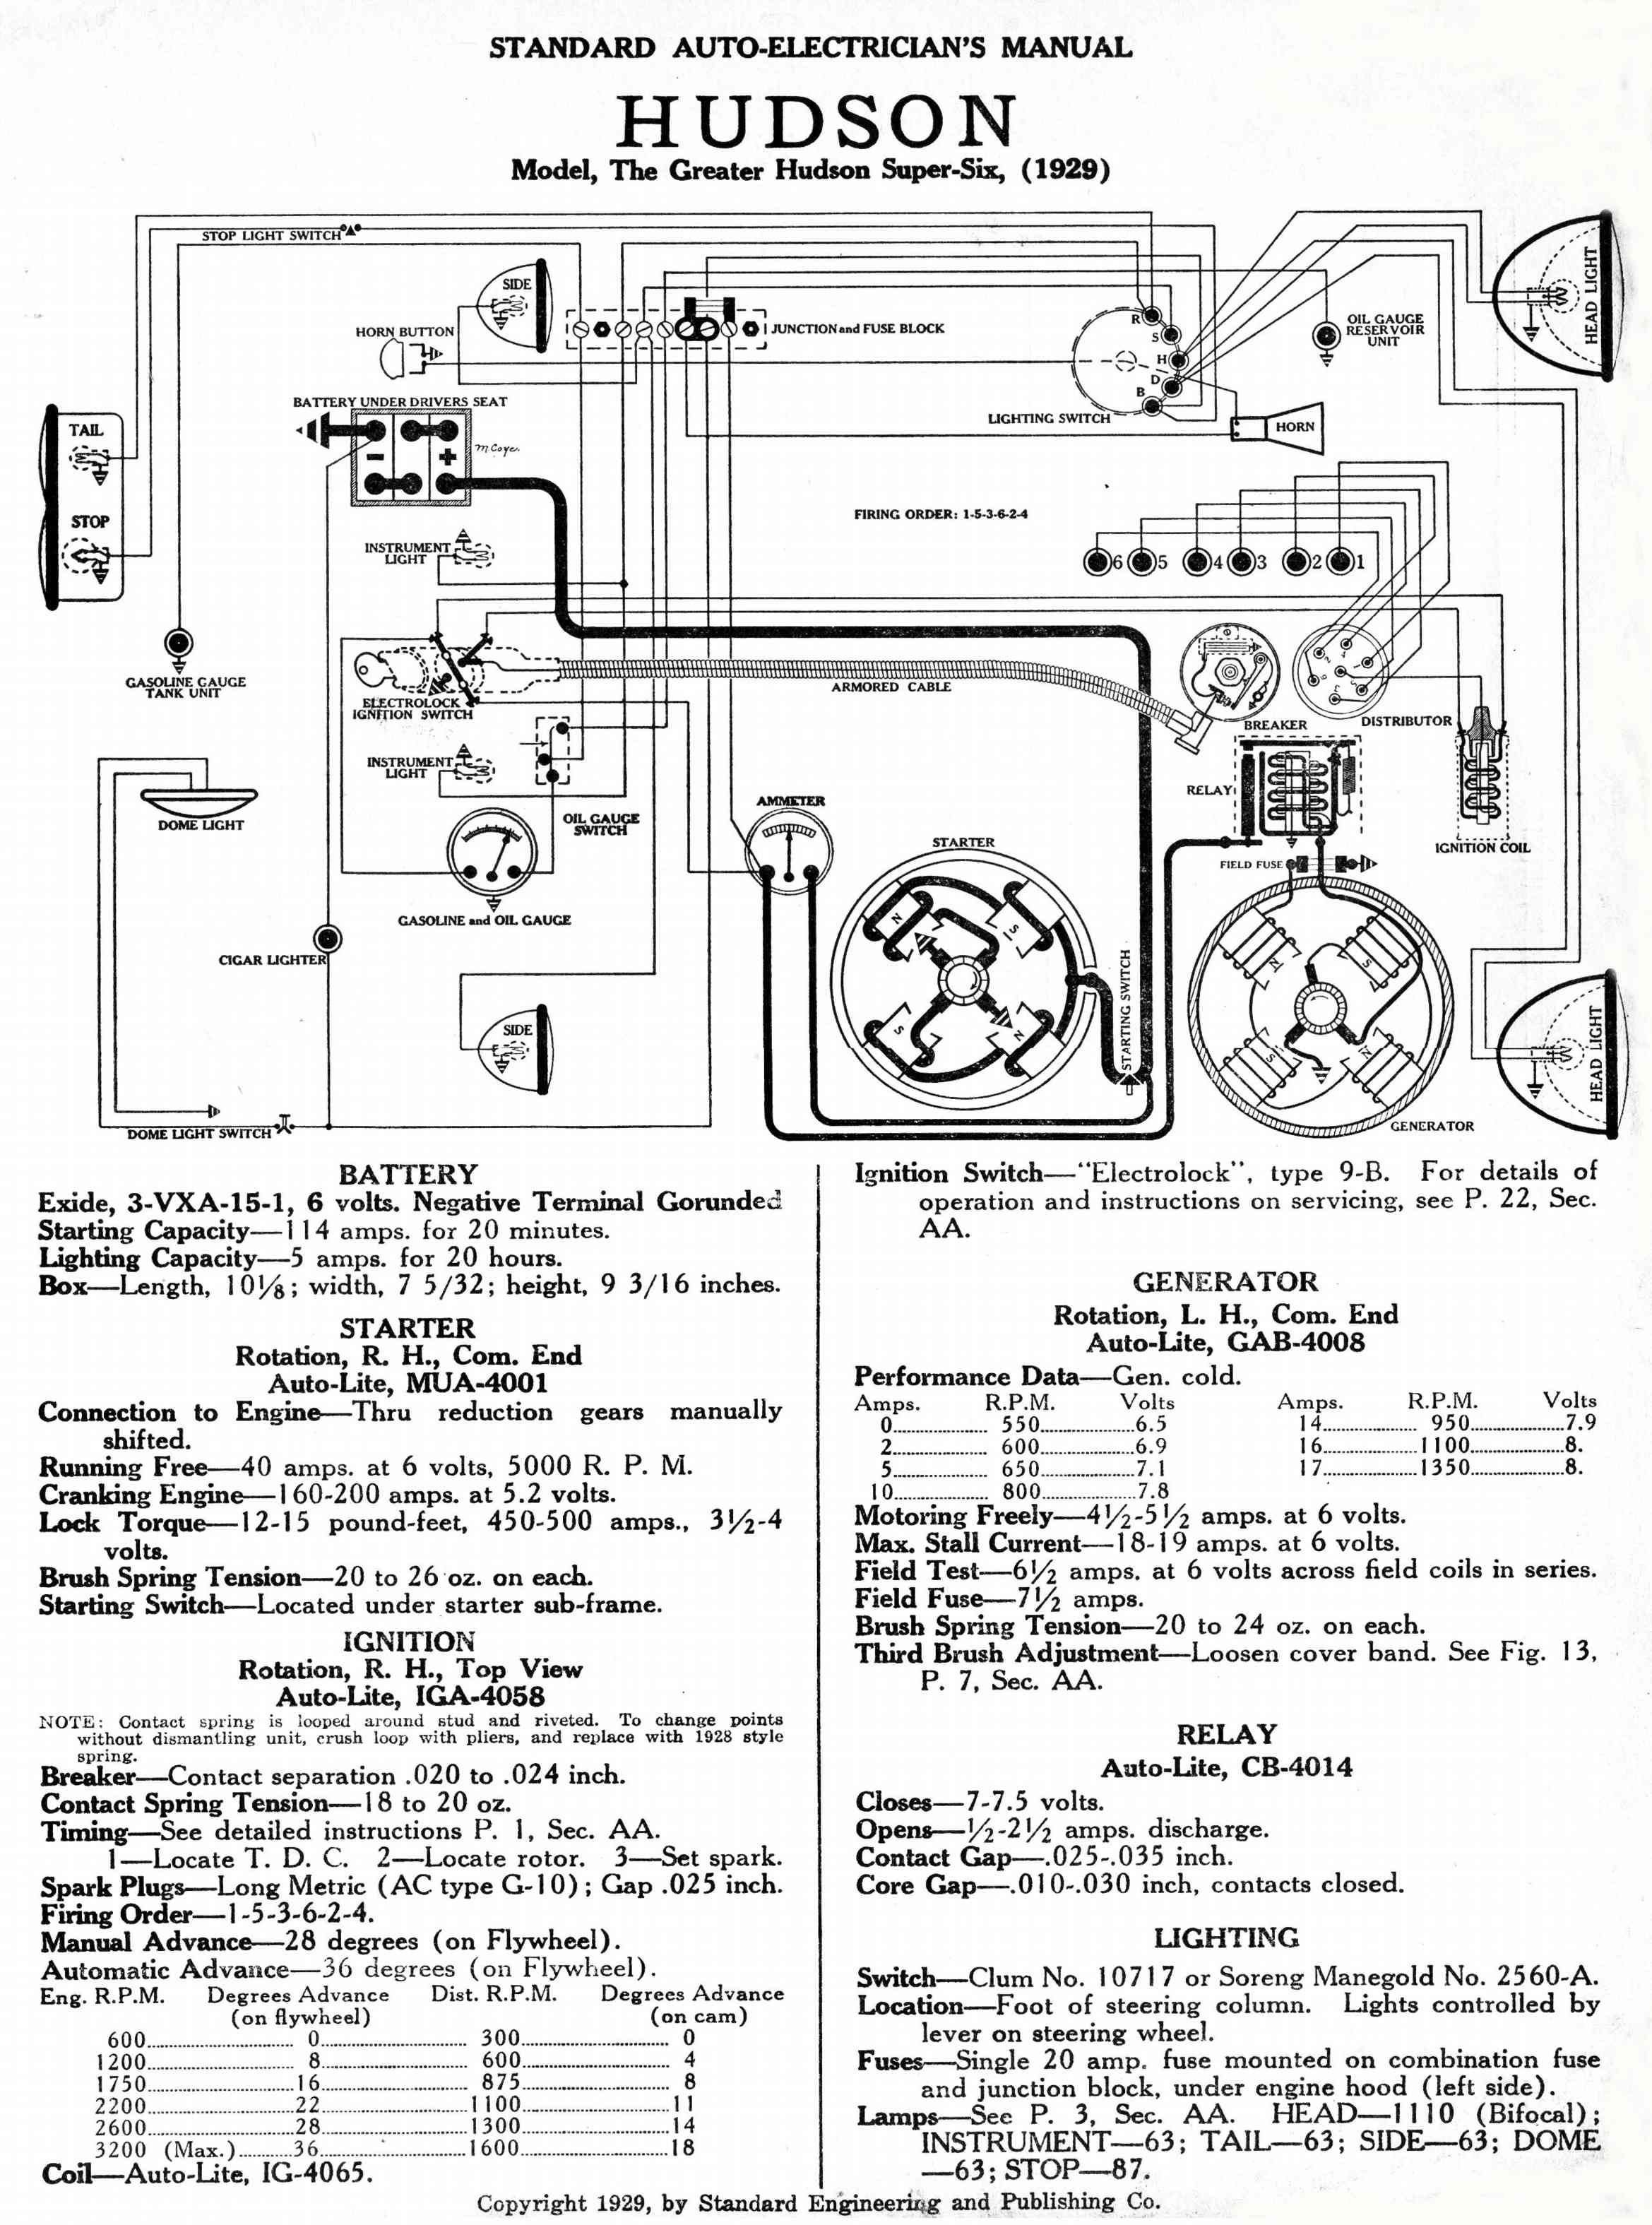 1941 Chrysler Royal Wiring Diagram Reinvent Your Car Stereo Hudson Manuals Tech Index Rh Hudsonterraplane Com